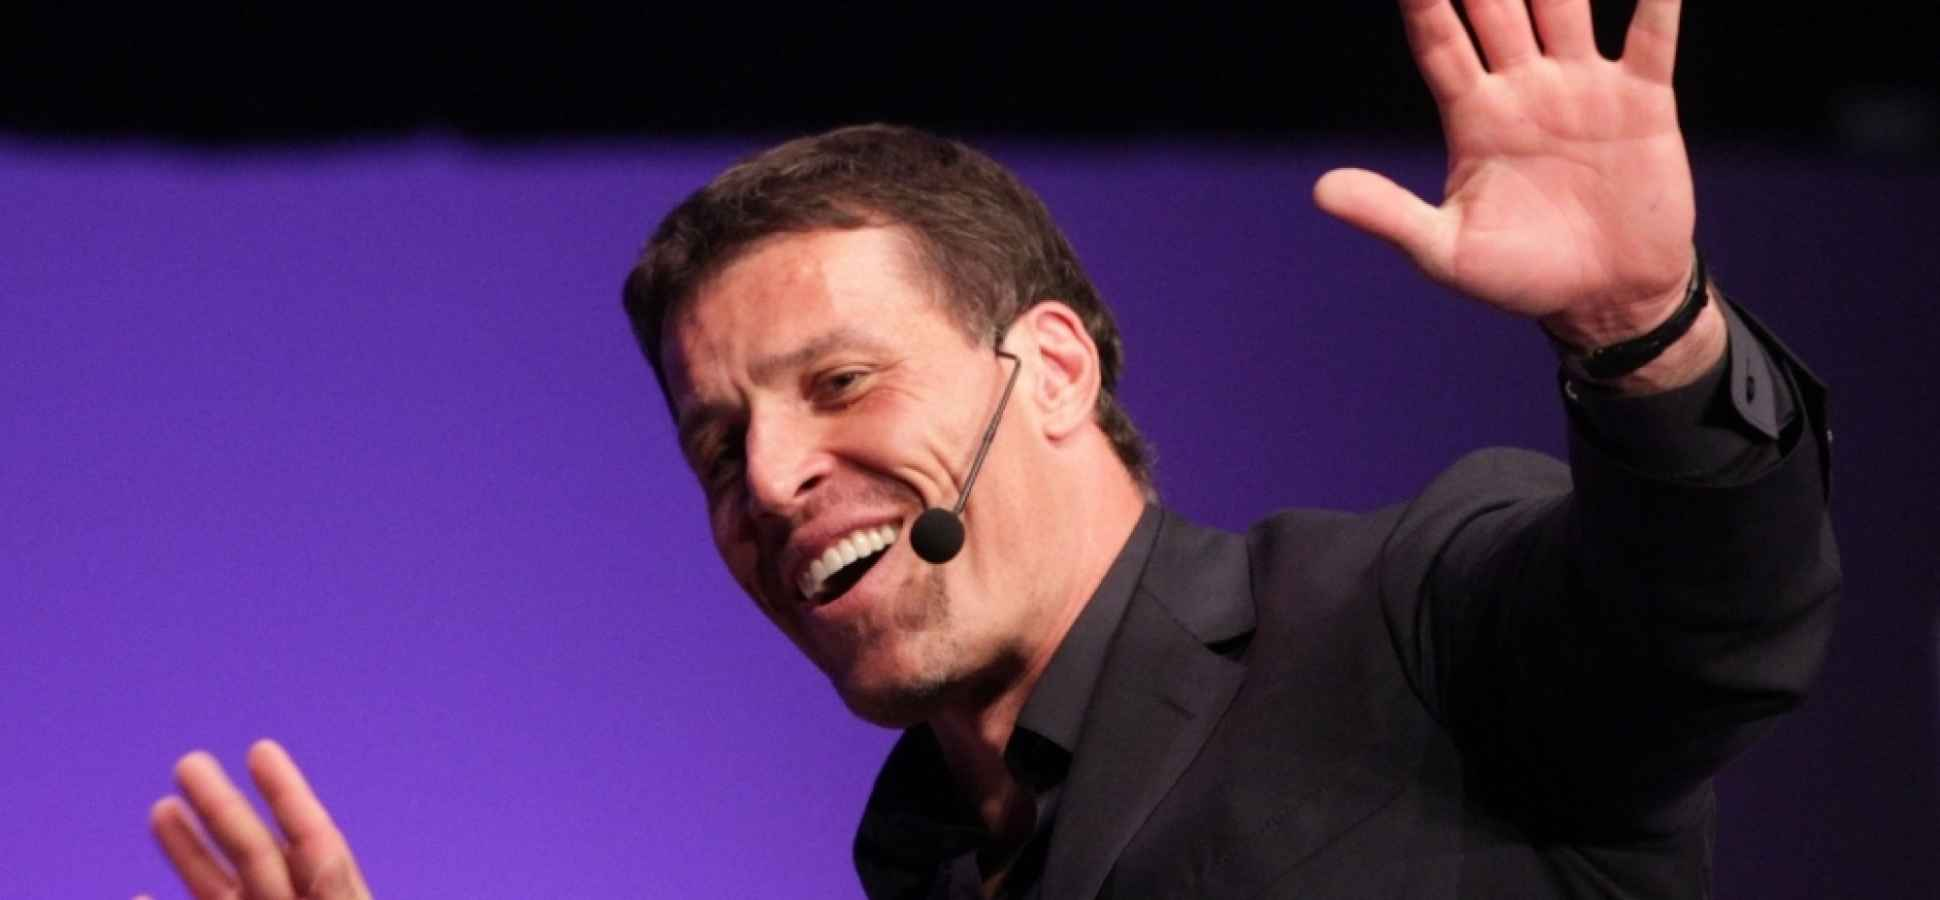 Tony Robbins: 19 Inspiring Power Quotes for Success